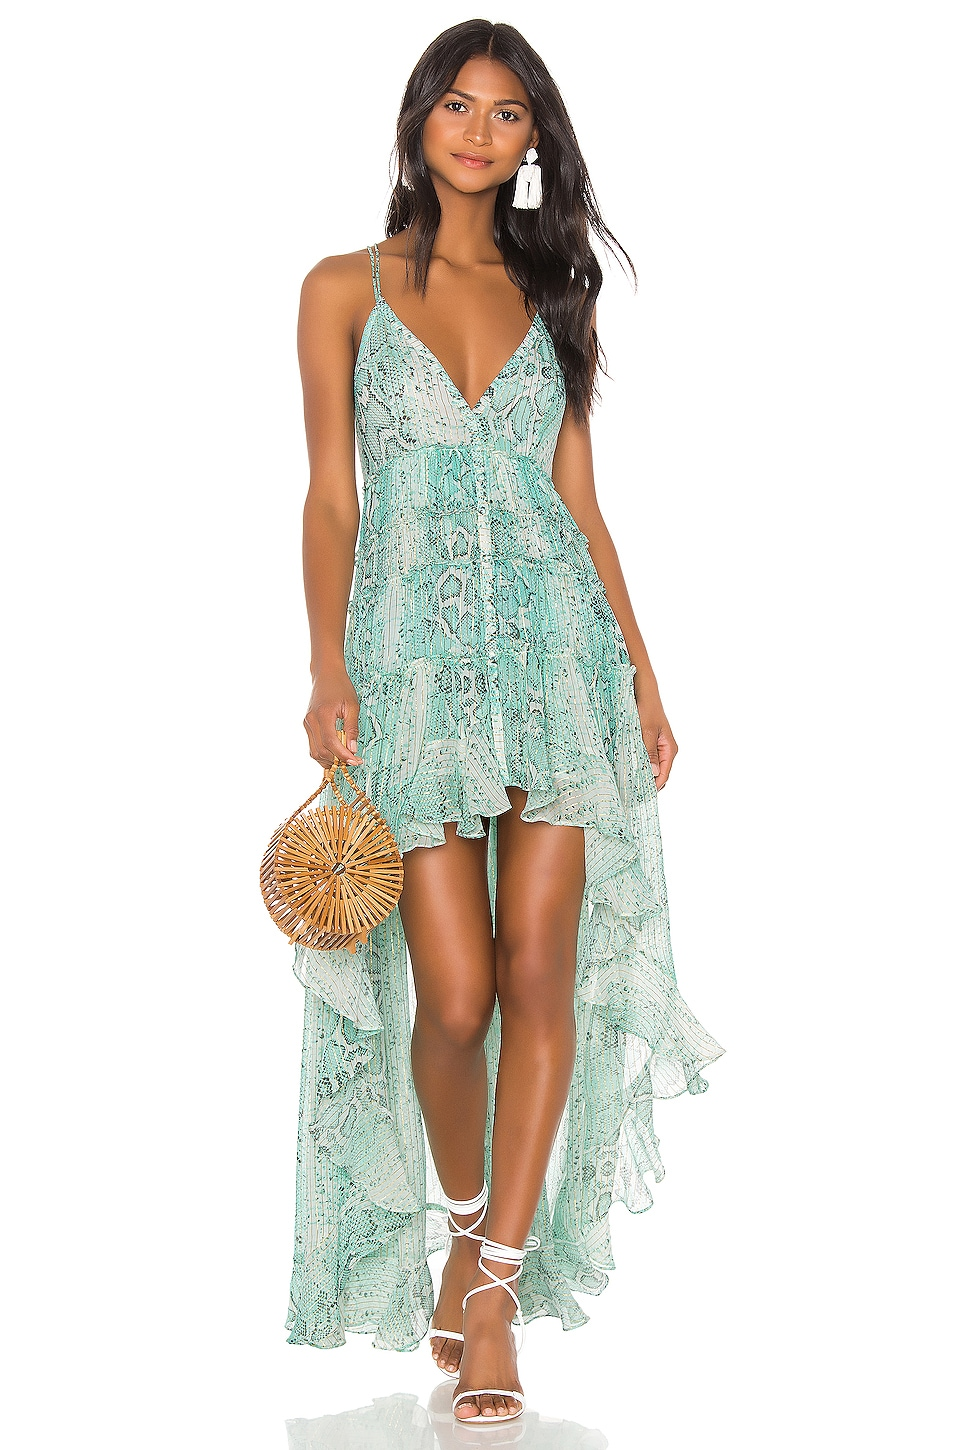 ROCOCO SAND x REVOLVE Lexi Maxi Dress in Teal Snake